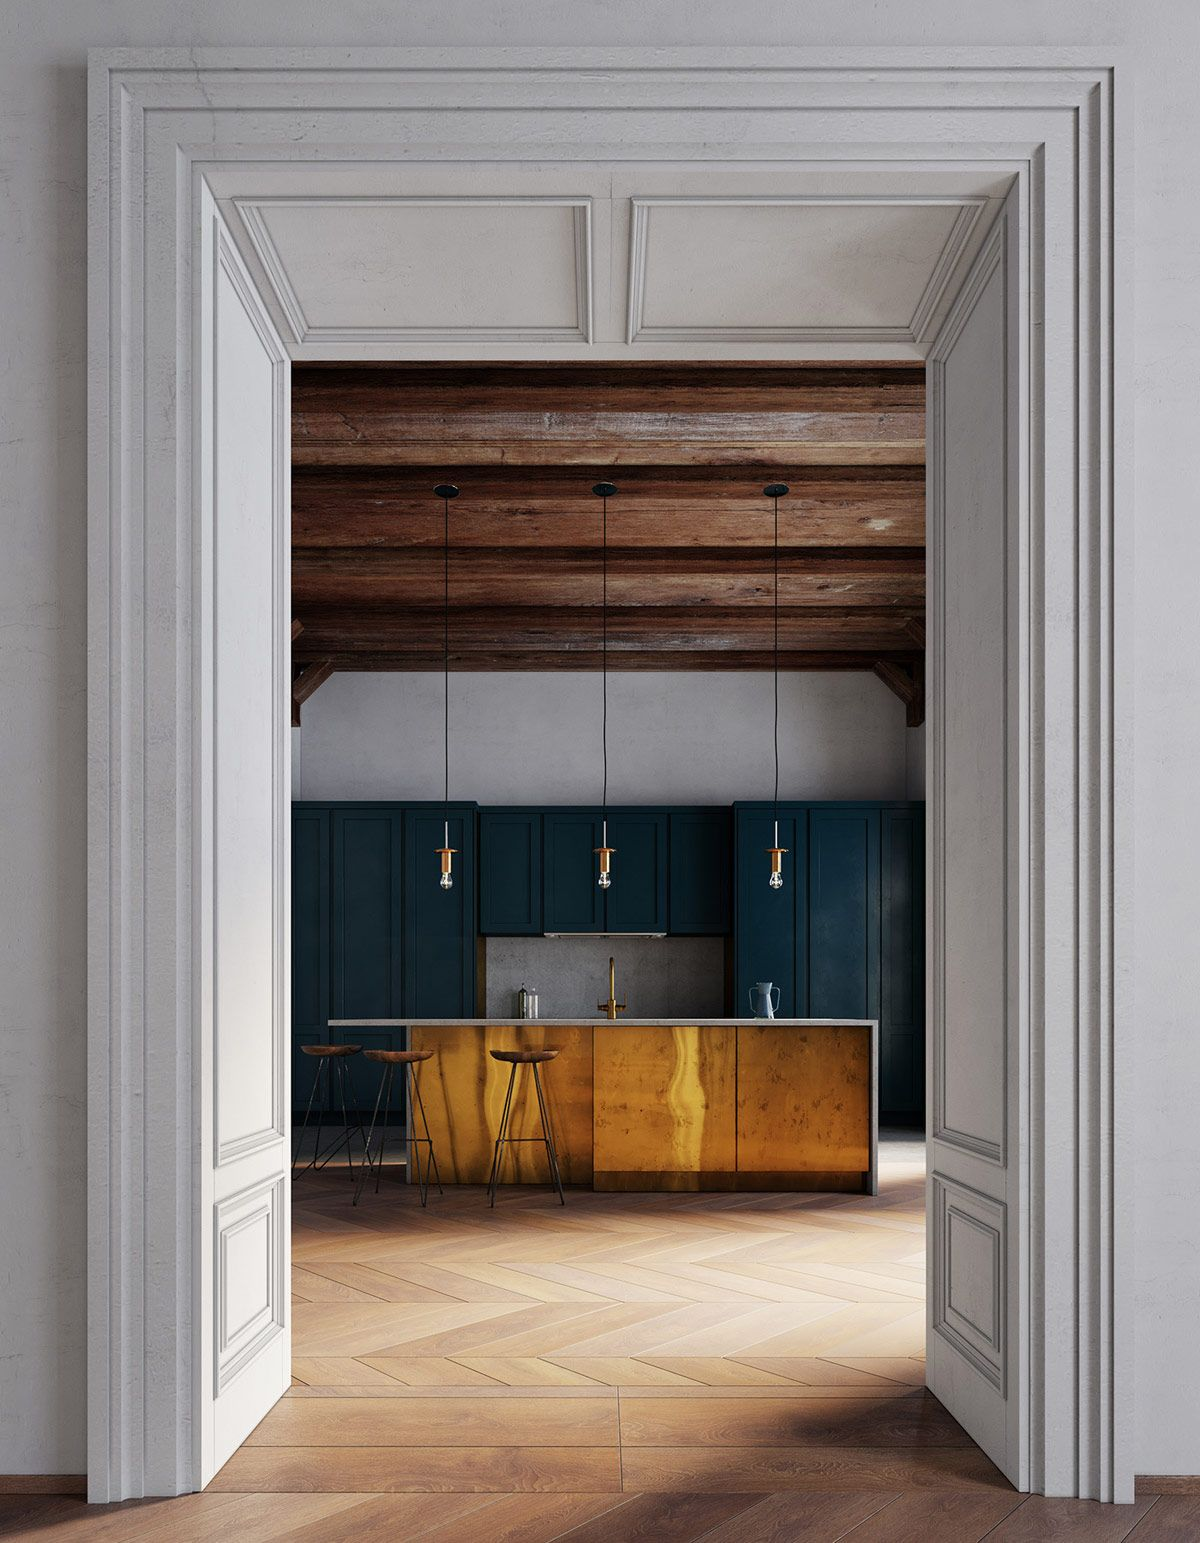 Room Lighting Design Software: Cohesive Colour Themes, Archways And Exposed Wooden Beams